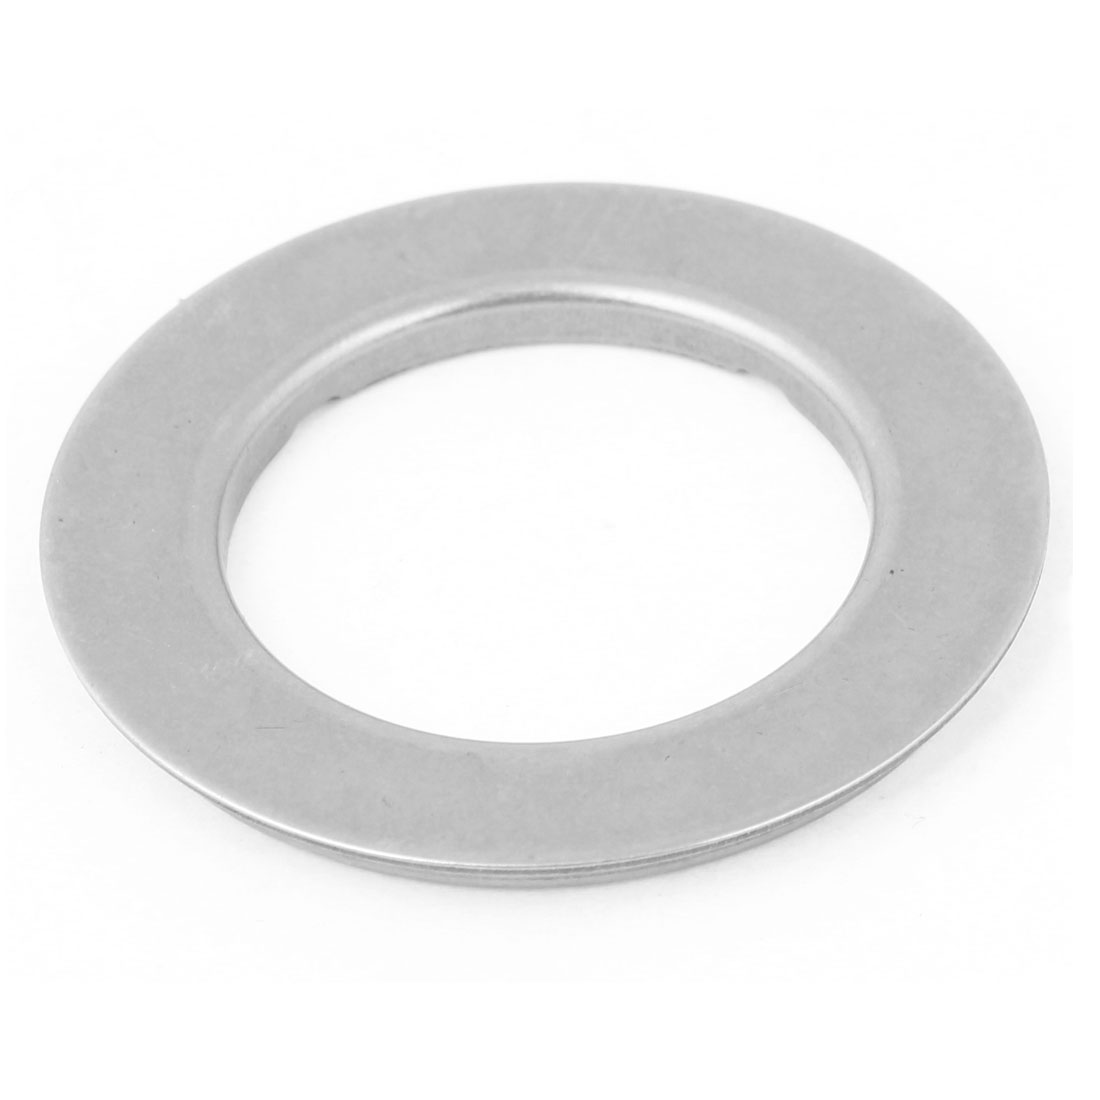 Single Lip Piston Rod Metal Oil Seal 32mm x 50mm x 4mm